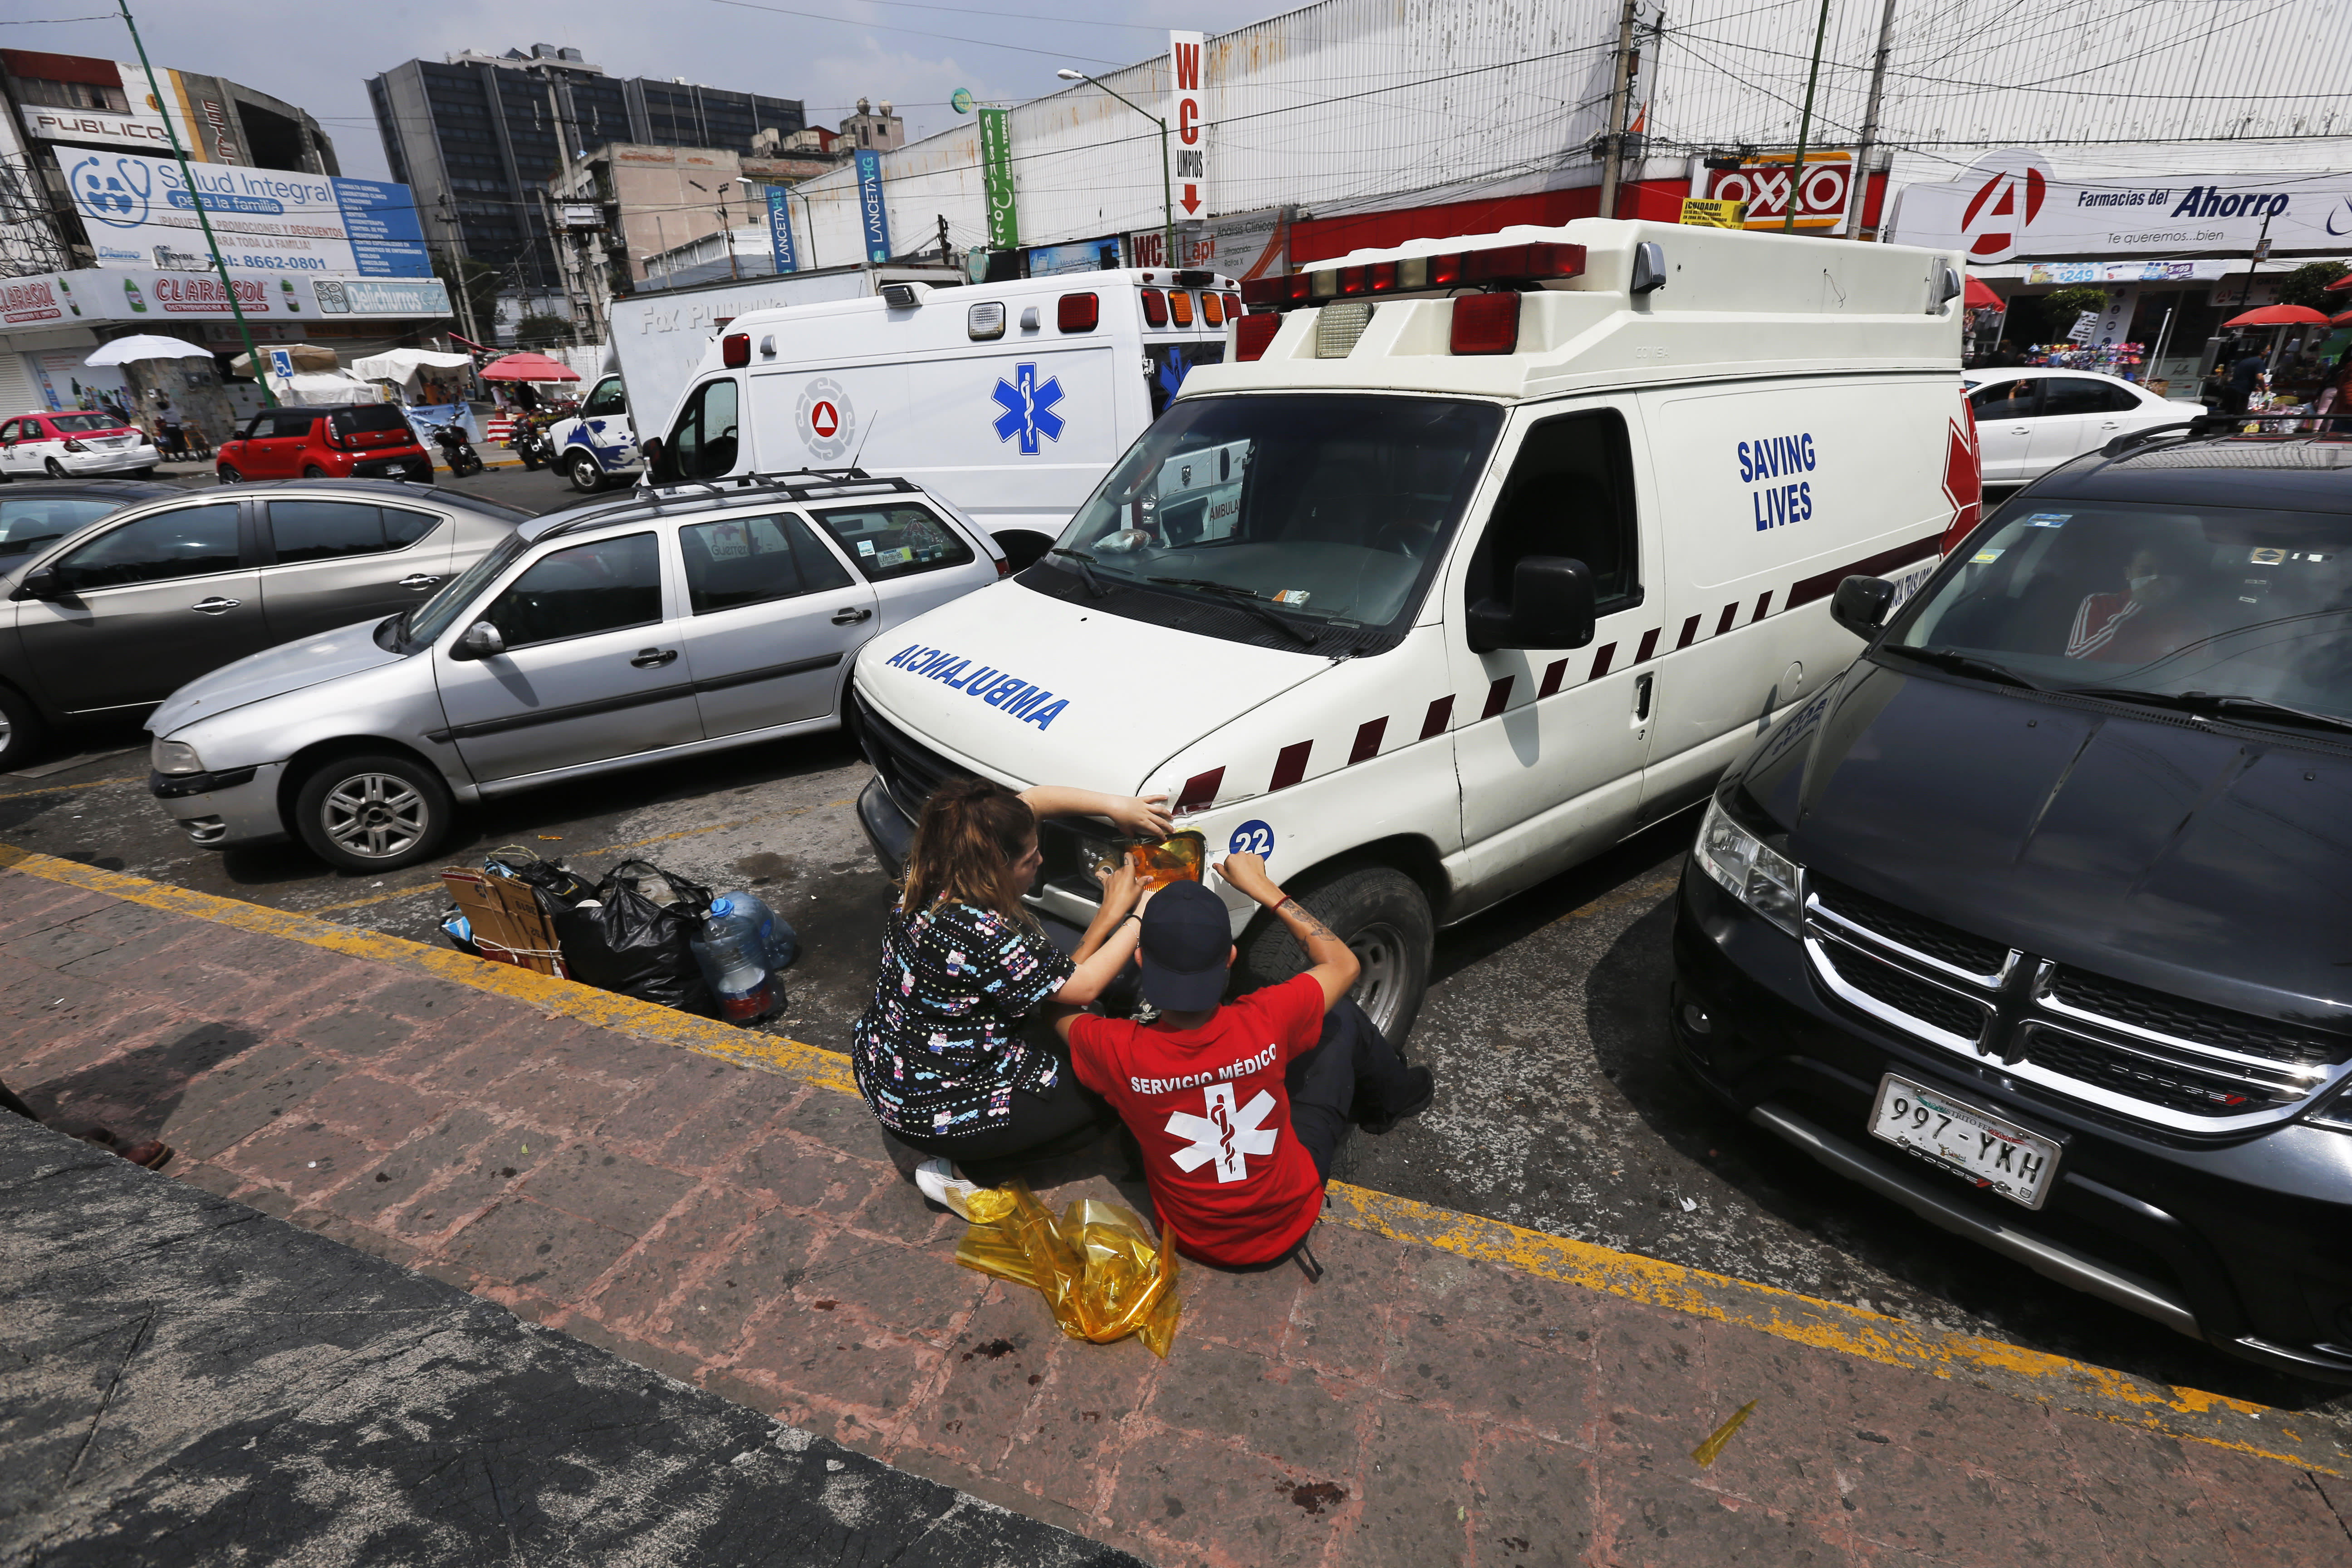 Mexico's pirate ambulances profiteering in the pandemic